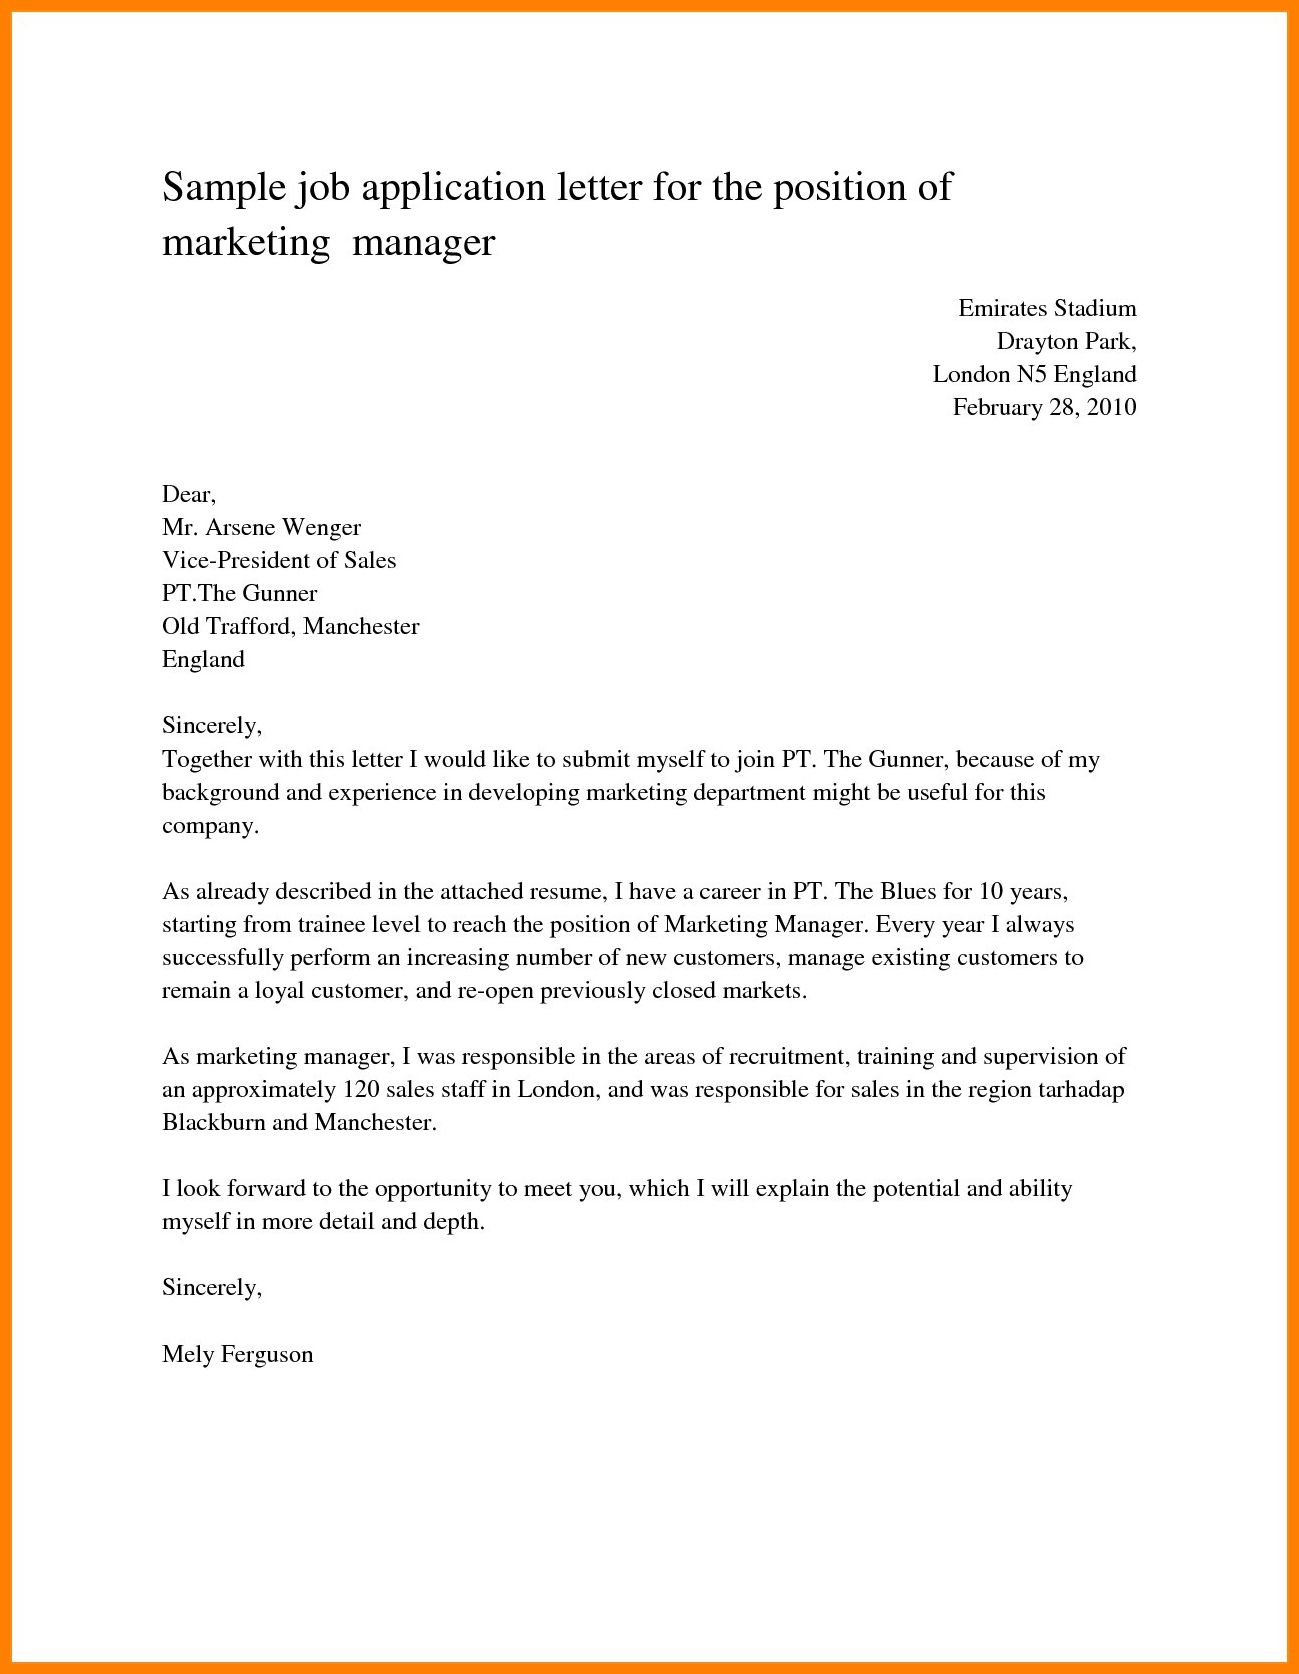 If you folks are looking for a simple cover letter example